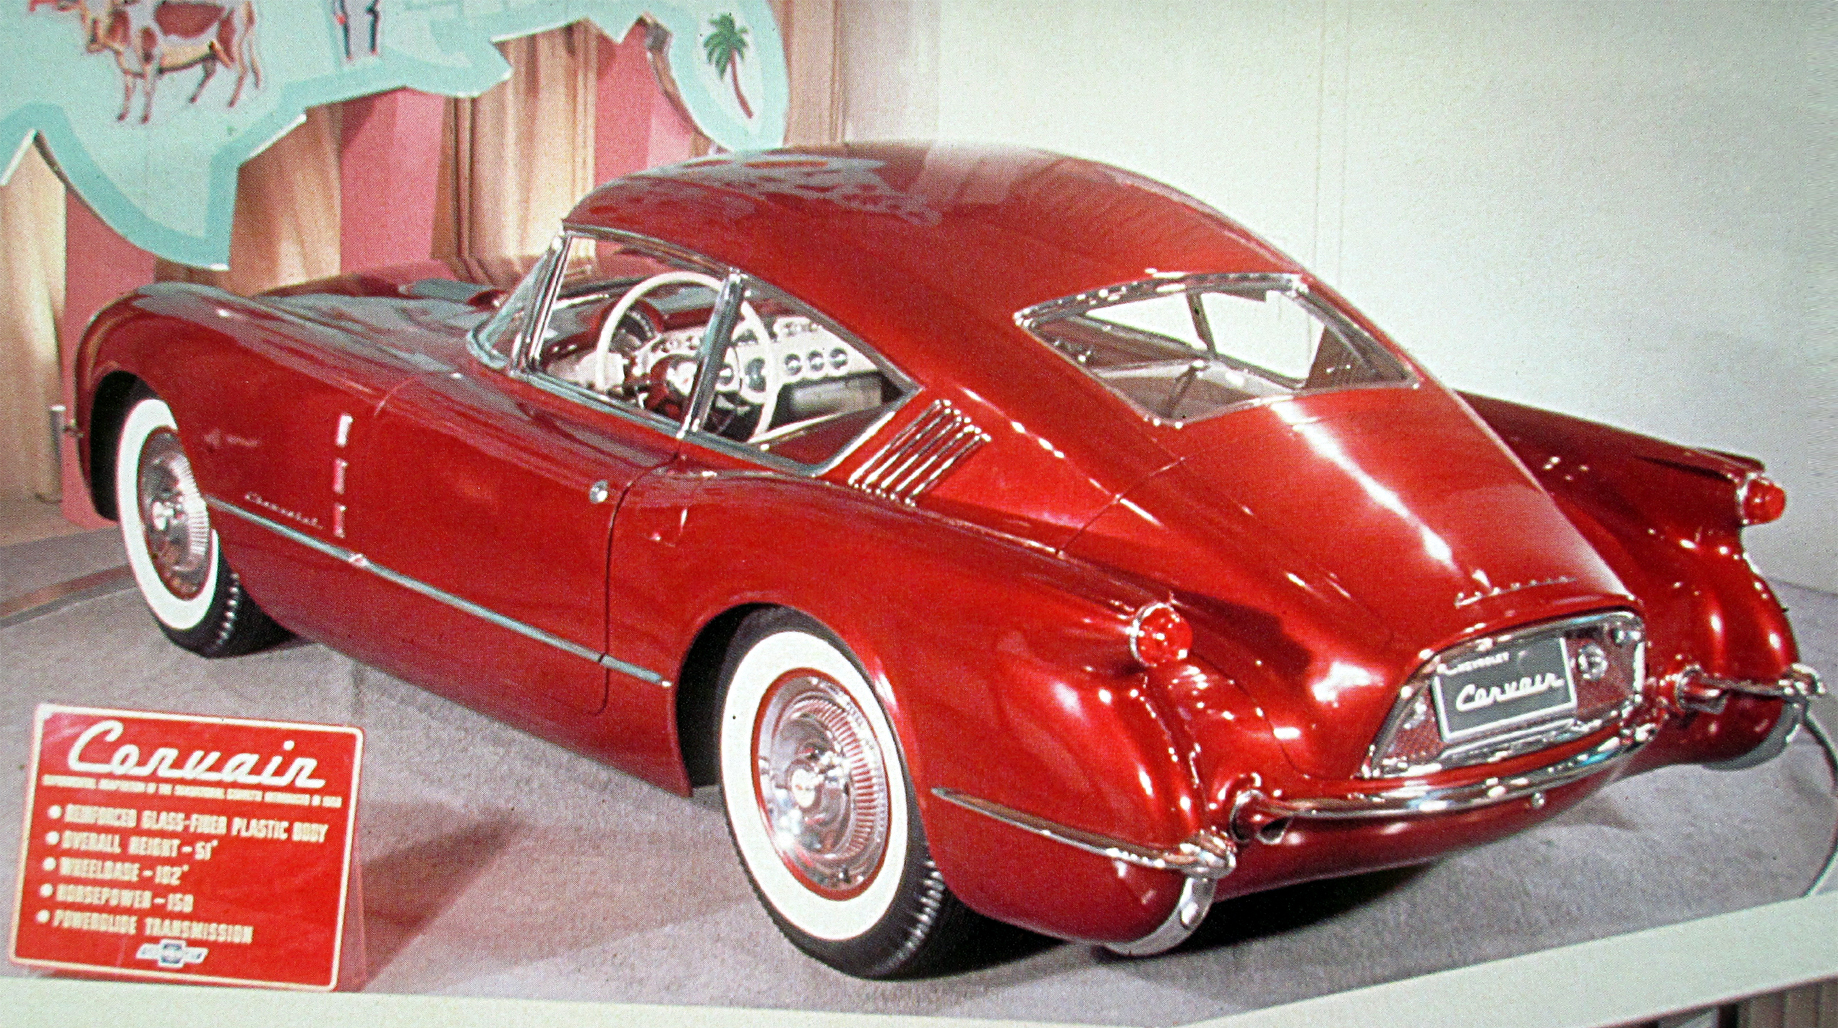 """'54 Chevy Corvette Corvair """"fast back"""" design. Harley's vision was to see that what Corvette was doing for the Chevrolet Div., the Wildcat II (Buick's new V-8 sports car offering) would go on to do the same thing for the Buick Div. Of course Harley had no intentions for this recipe to stop with just two of GM's """"Fabulous Five Brands"""" so he continued and developed other high performance vehicles (you could call them GM's earliest post WW II muscle cars) by creating La Espada and El Camino for the Cadillac luxury brand; Oldsmobile had the F-88 and Harley and his team of design engineers at GM Styling gave Pontiac the Bonneville Special."""